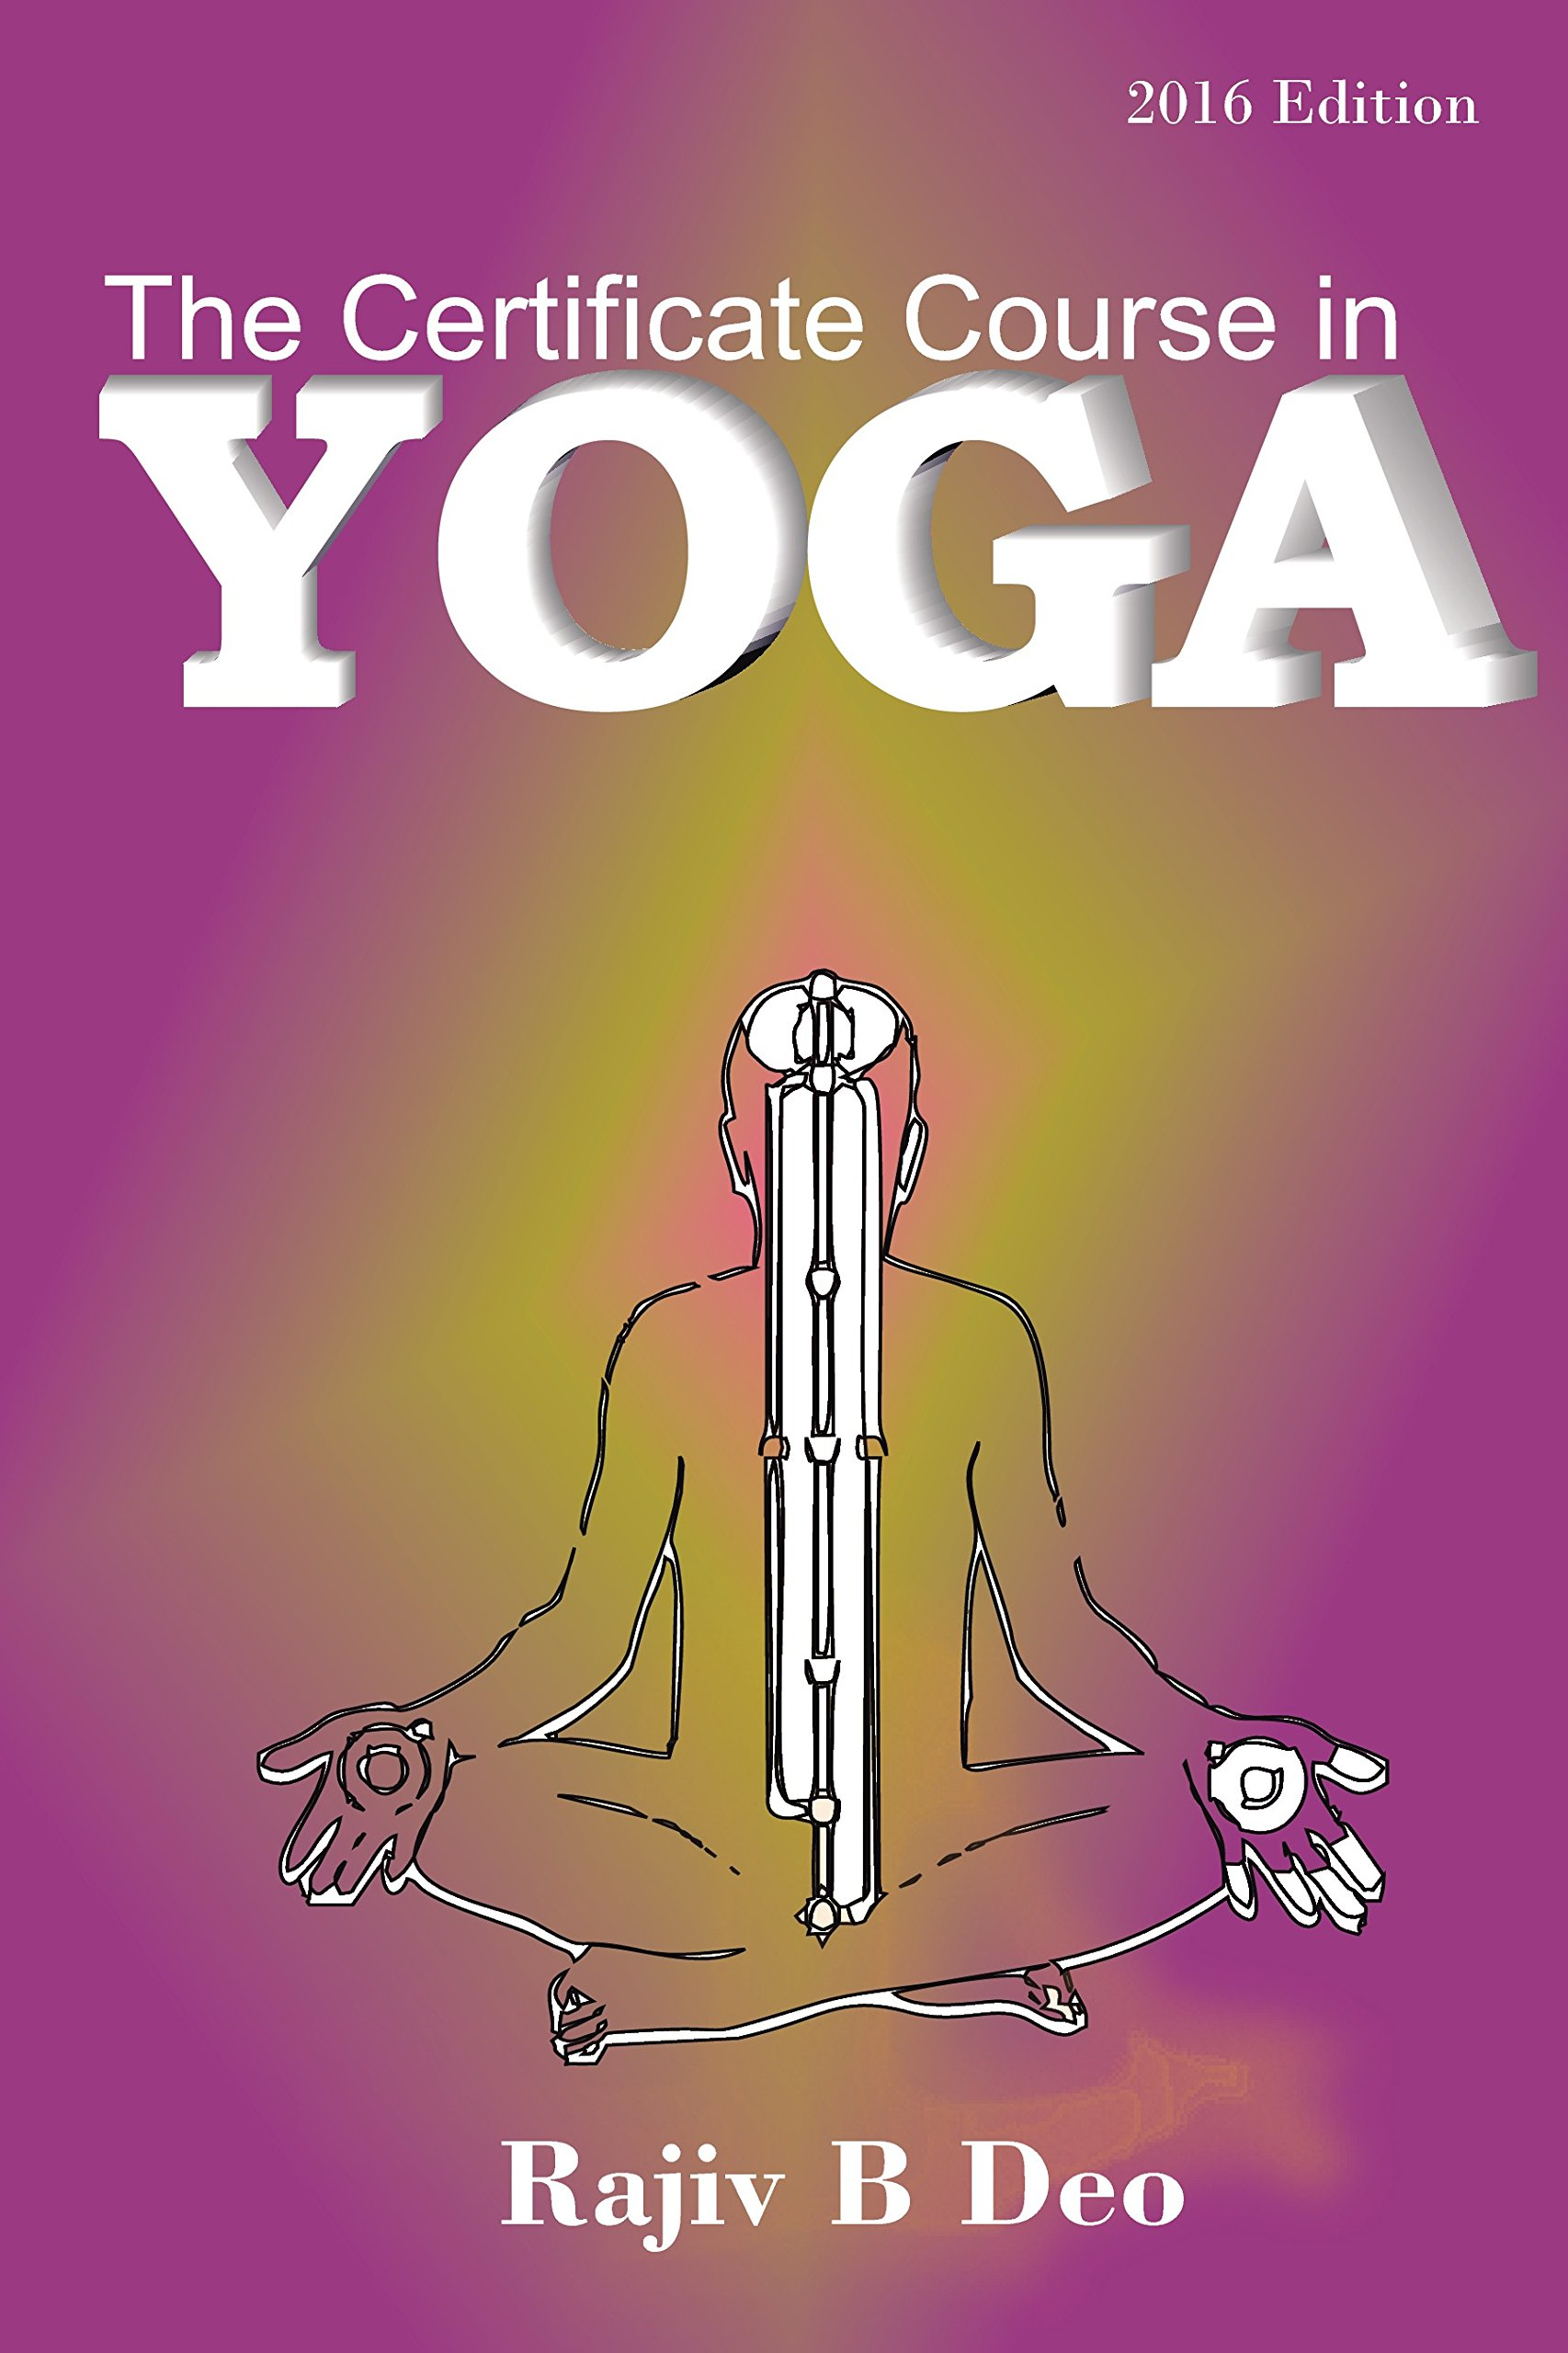 Buy The Certificate Course In Yoga Book Online At Low Prices In India The Certificate Course In Yoga Reviews Ratings Amazon In